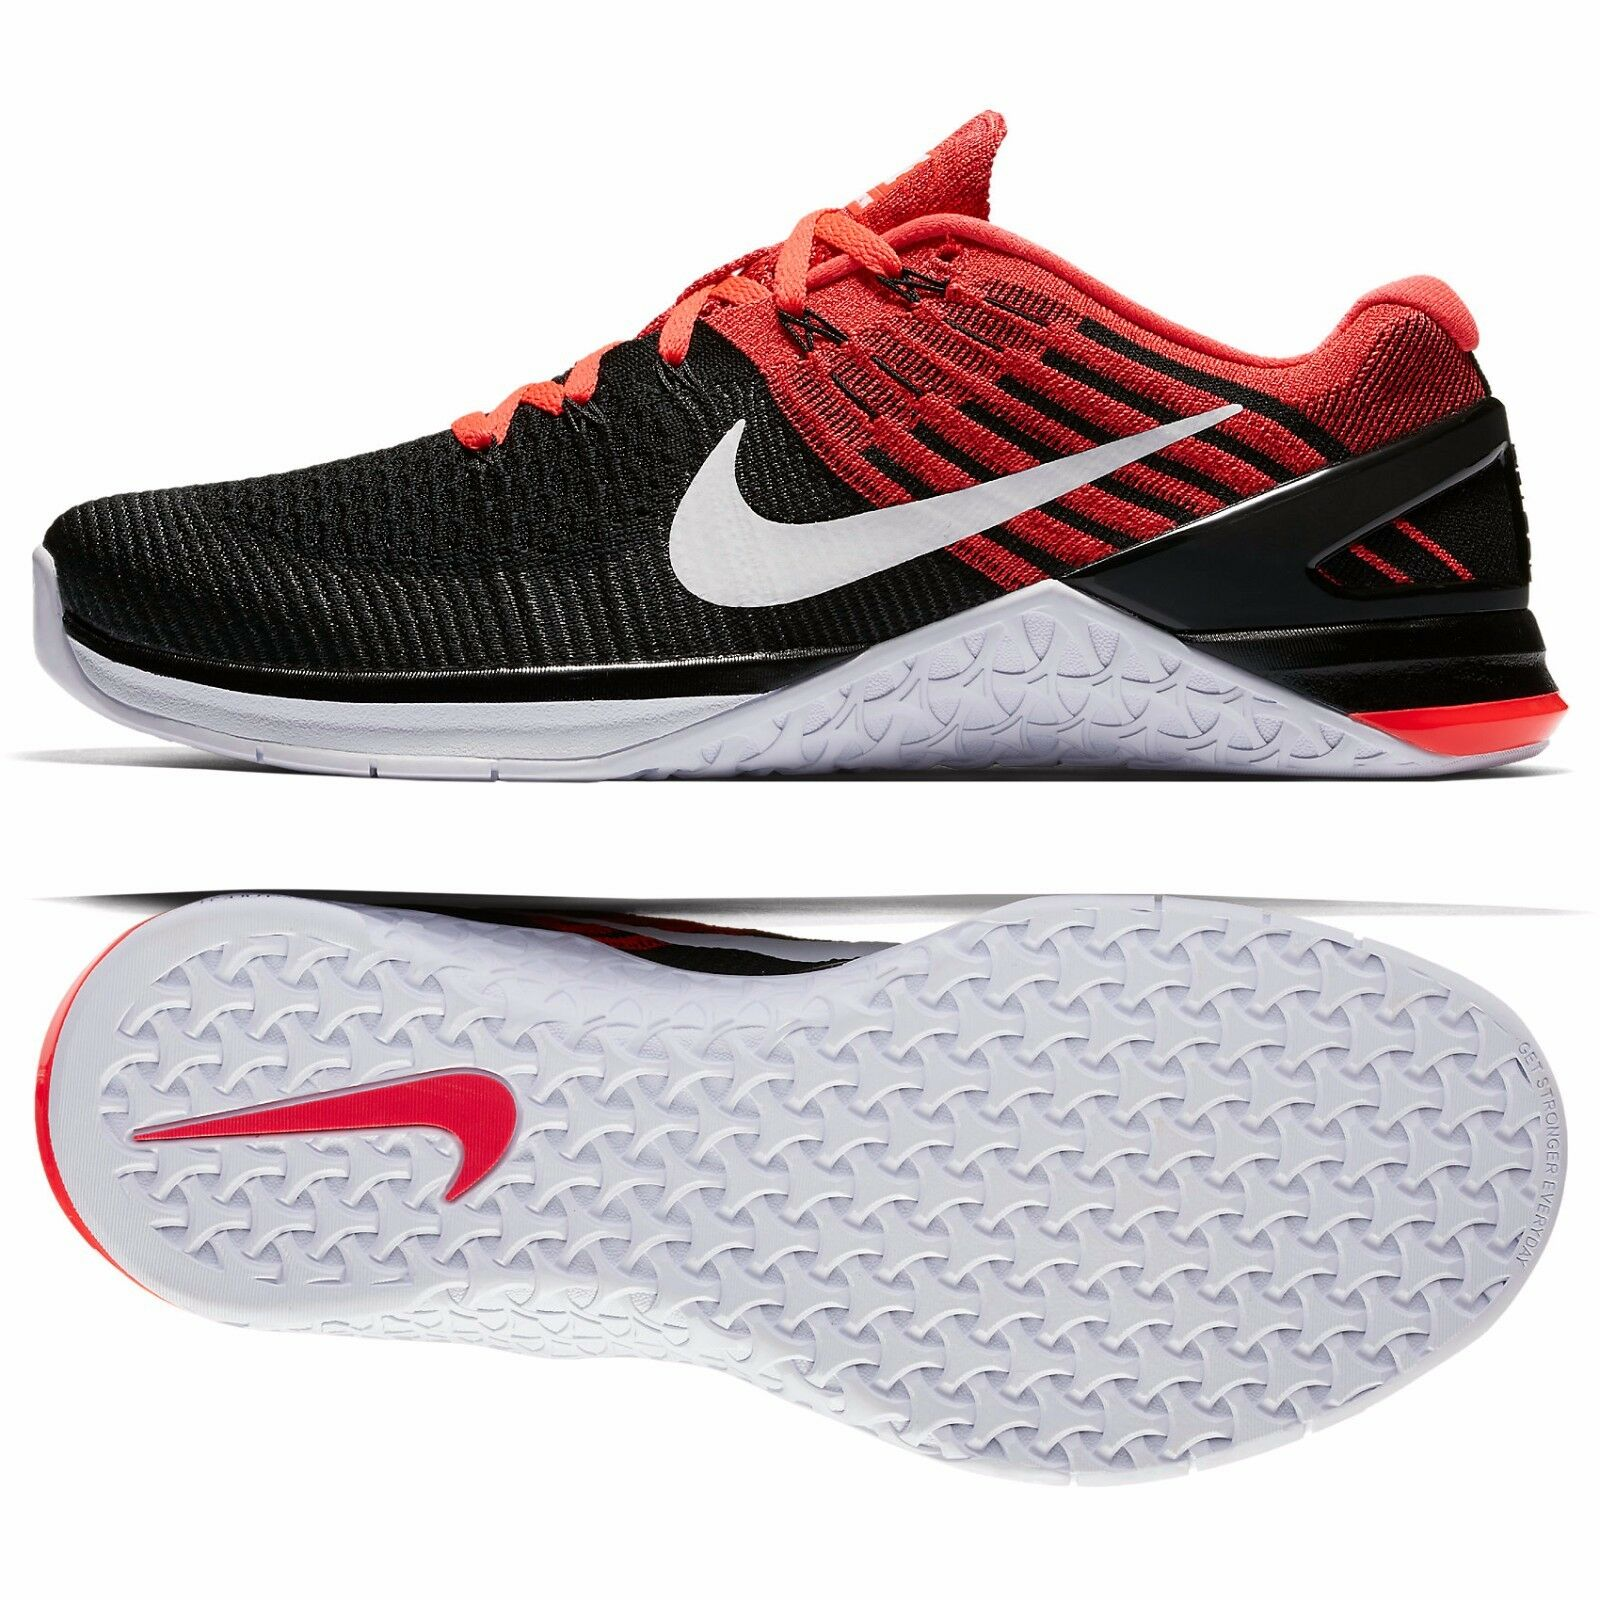 Nike Metcon DSX Flyknit 852930-009 Noir Blanc pourpre Hommes formation chaussures Sz 10